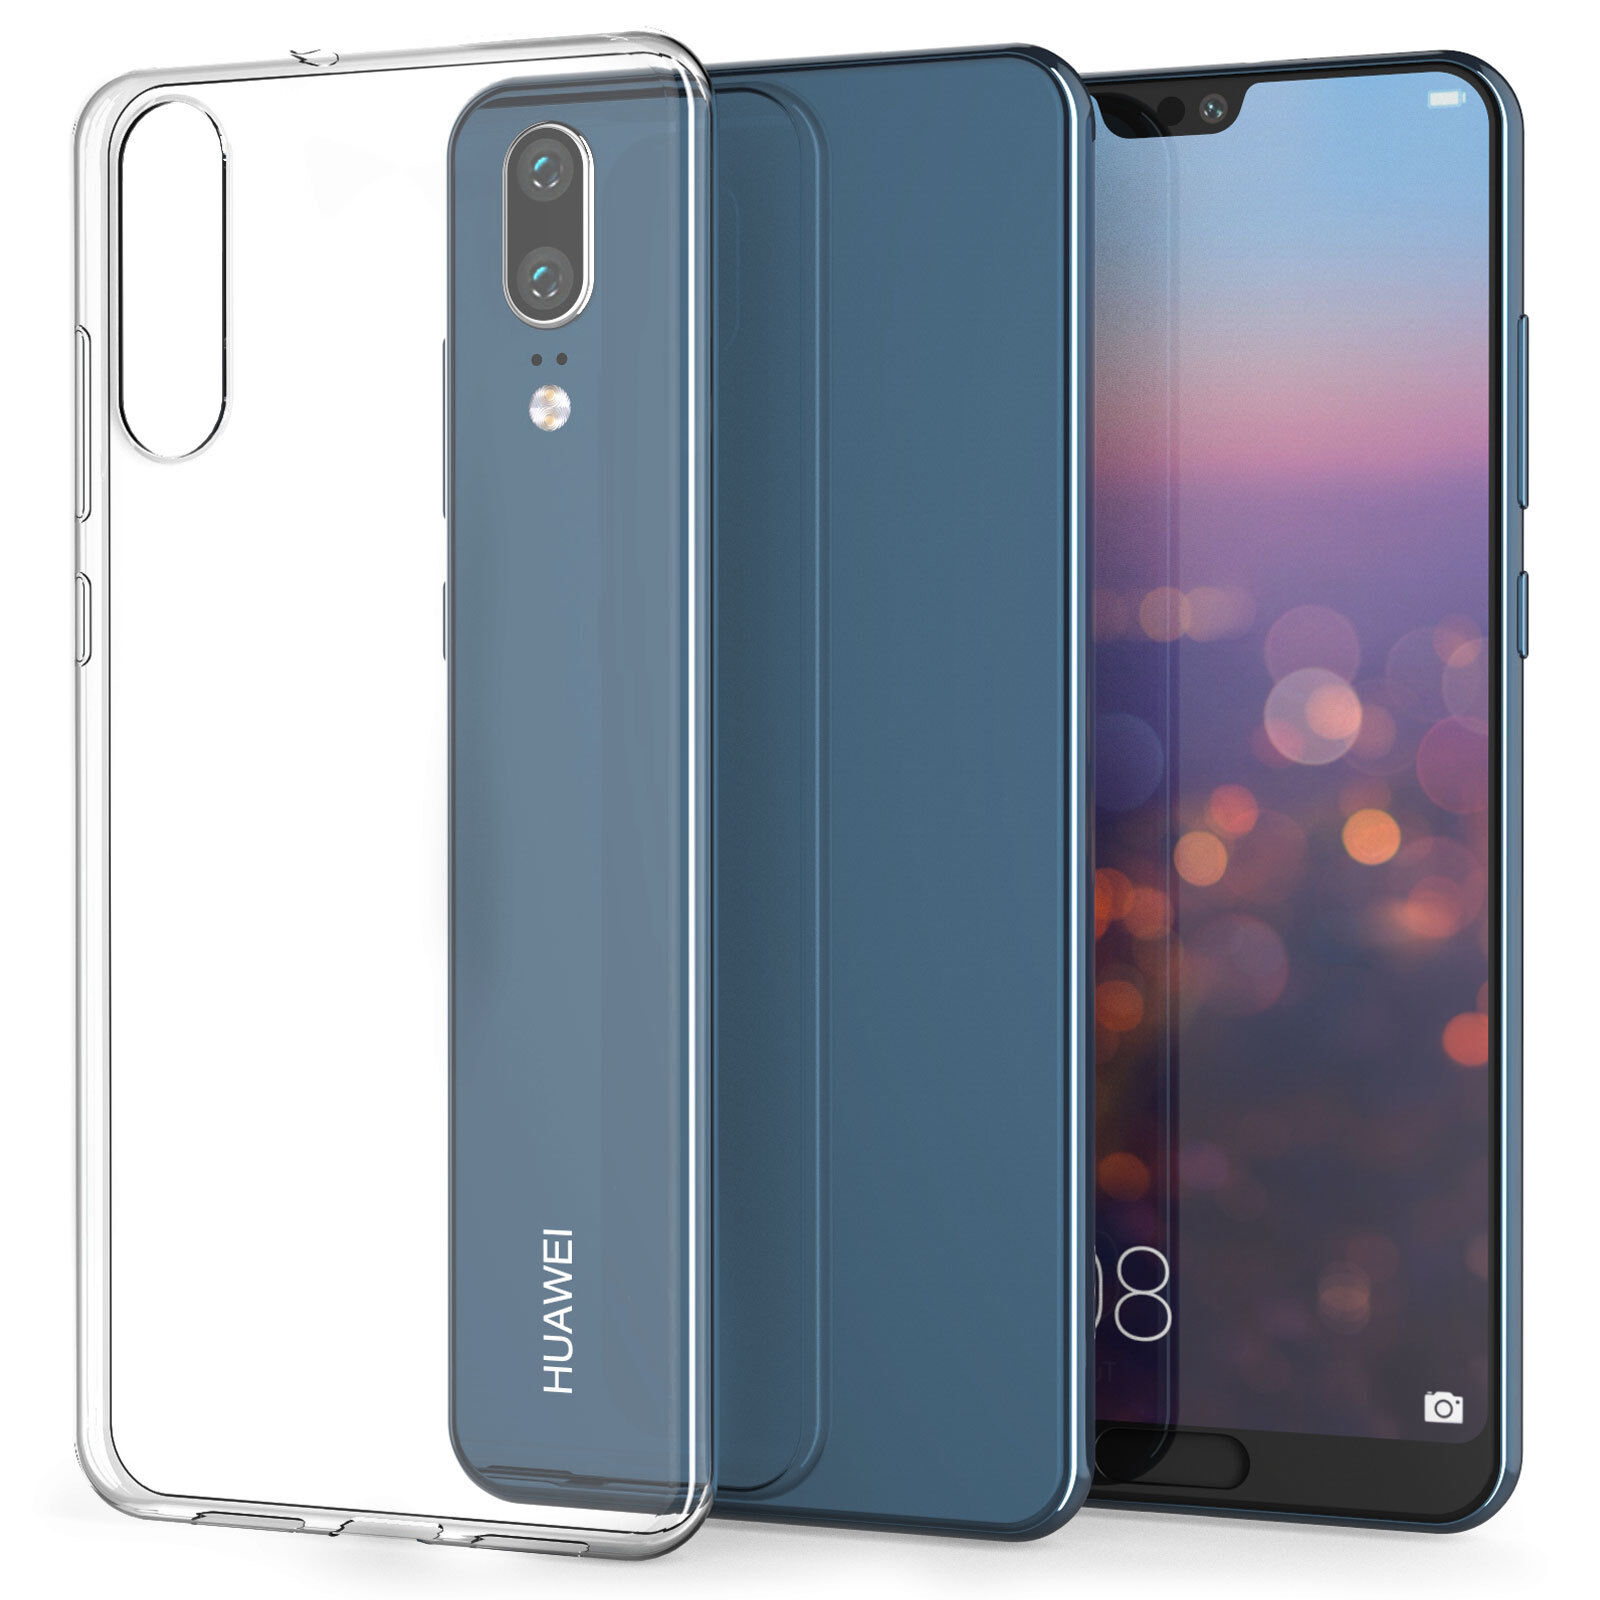 Details about For Huawei P20/P20 Pro Case, Crystal Clear Transparent  Silicone Gel Phone Cover